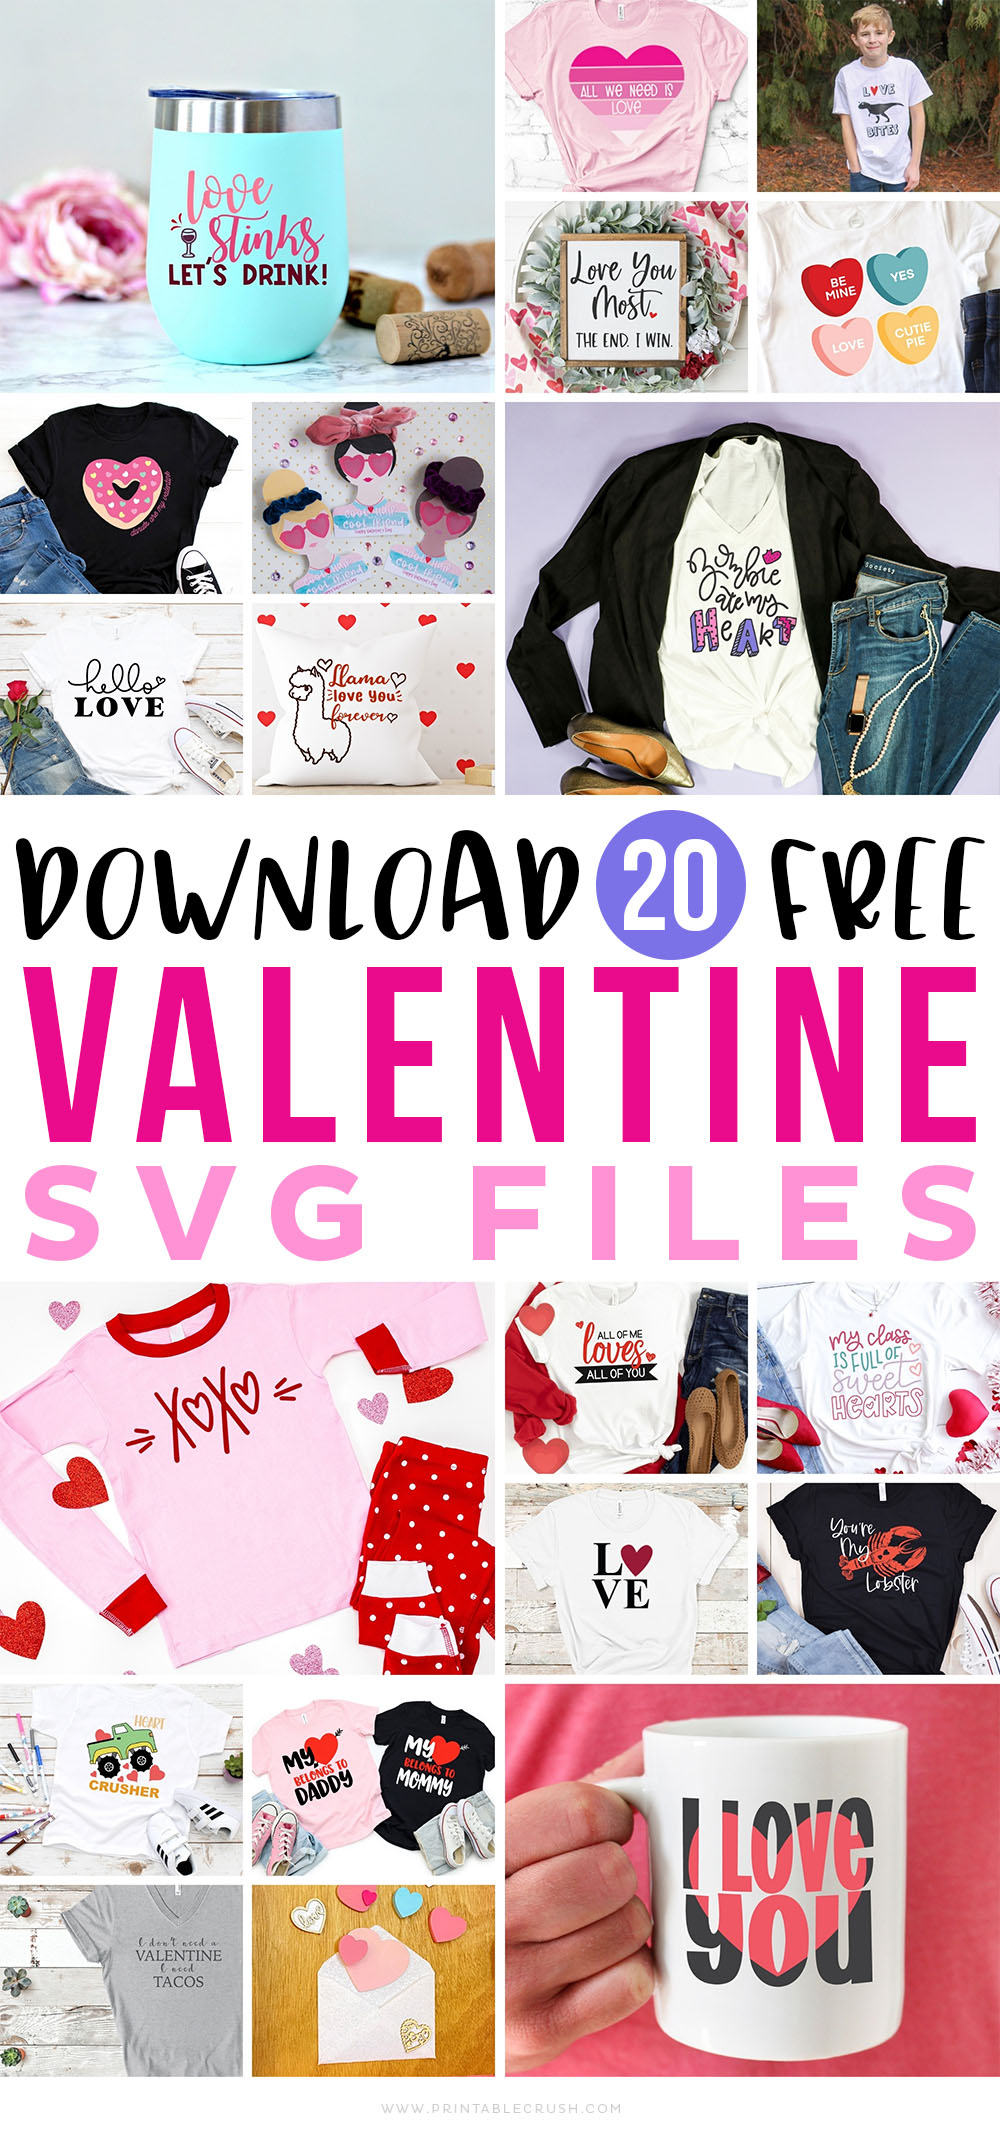 20 Free Valentine SVG Files - Valentine Cricut Projects - Valentine SVGs - Free SVG Files for Valentine's Day - Printable Crush